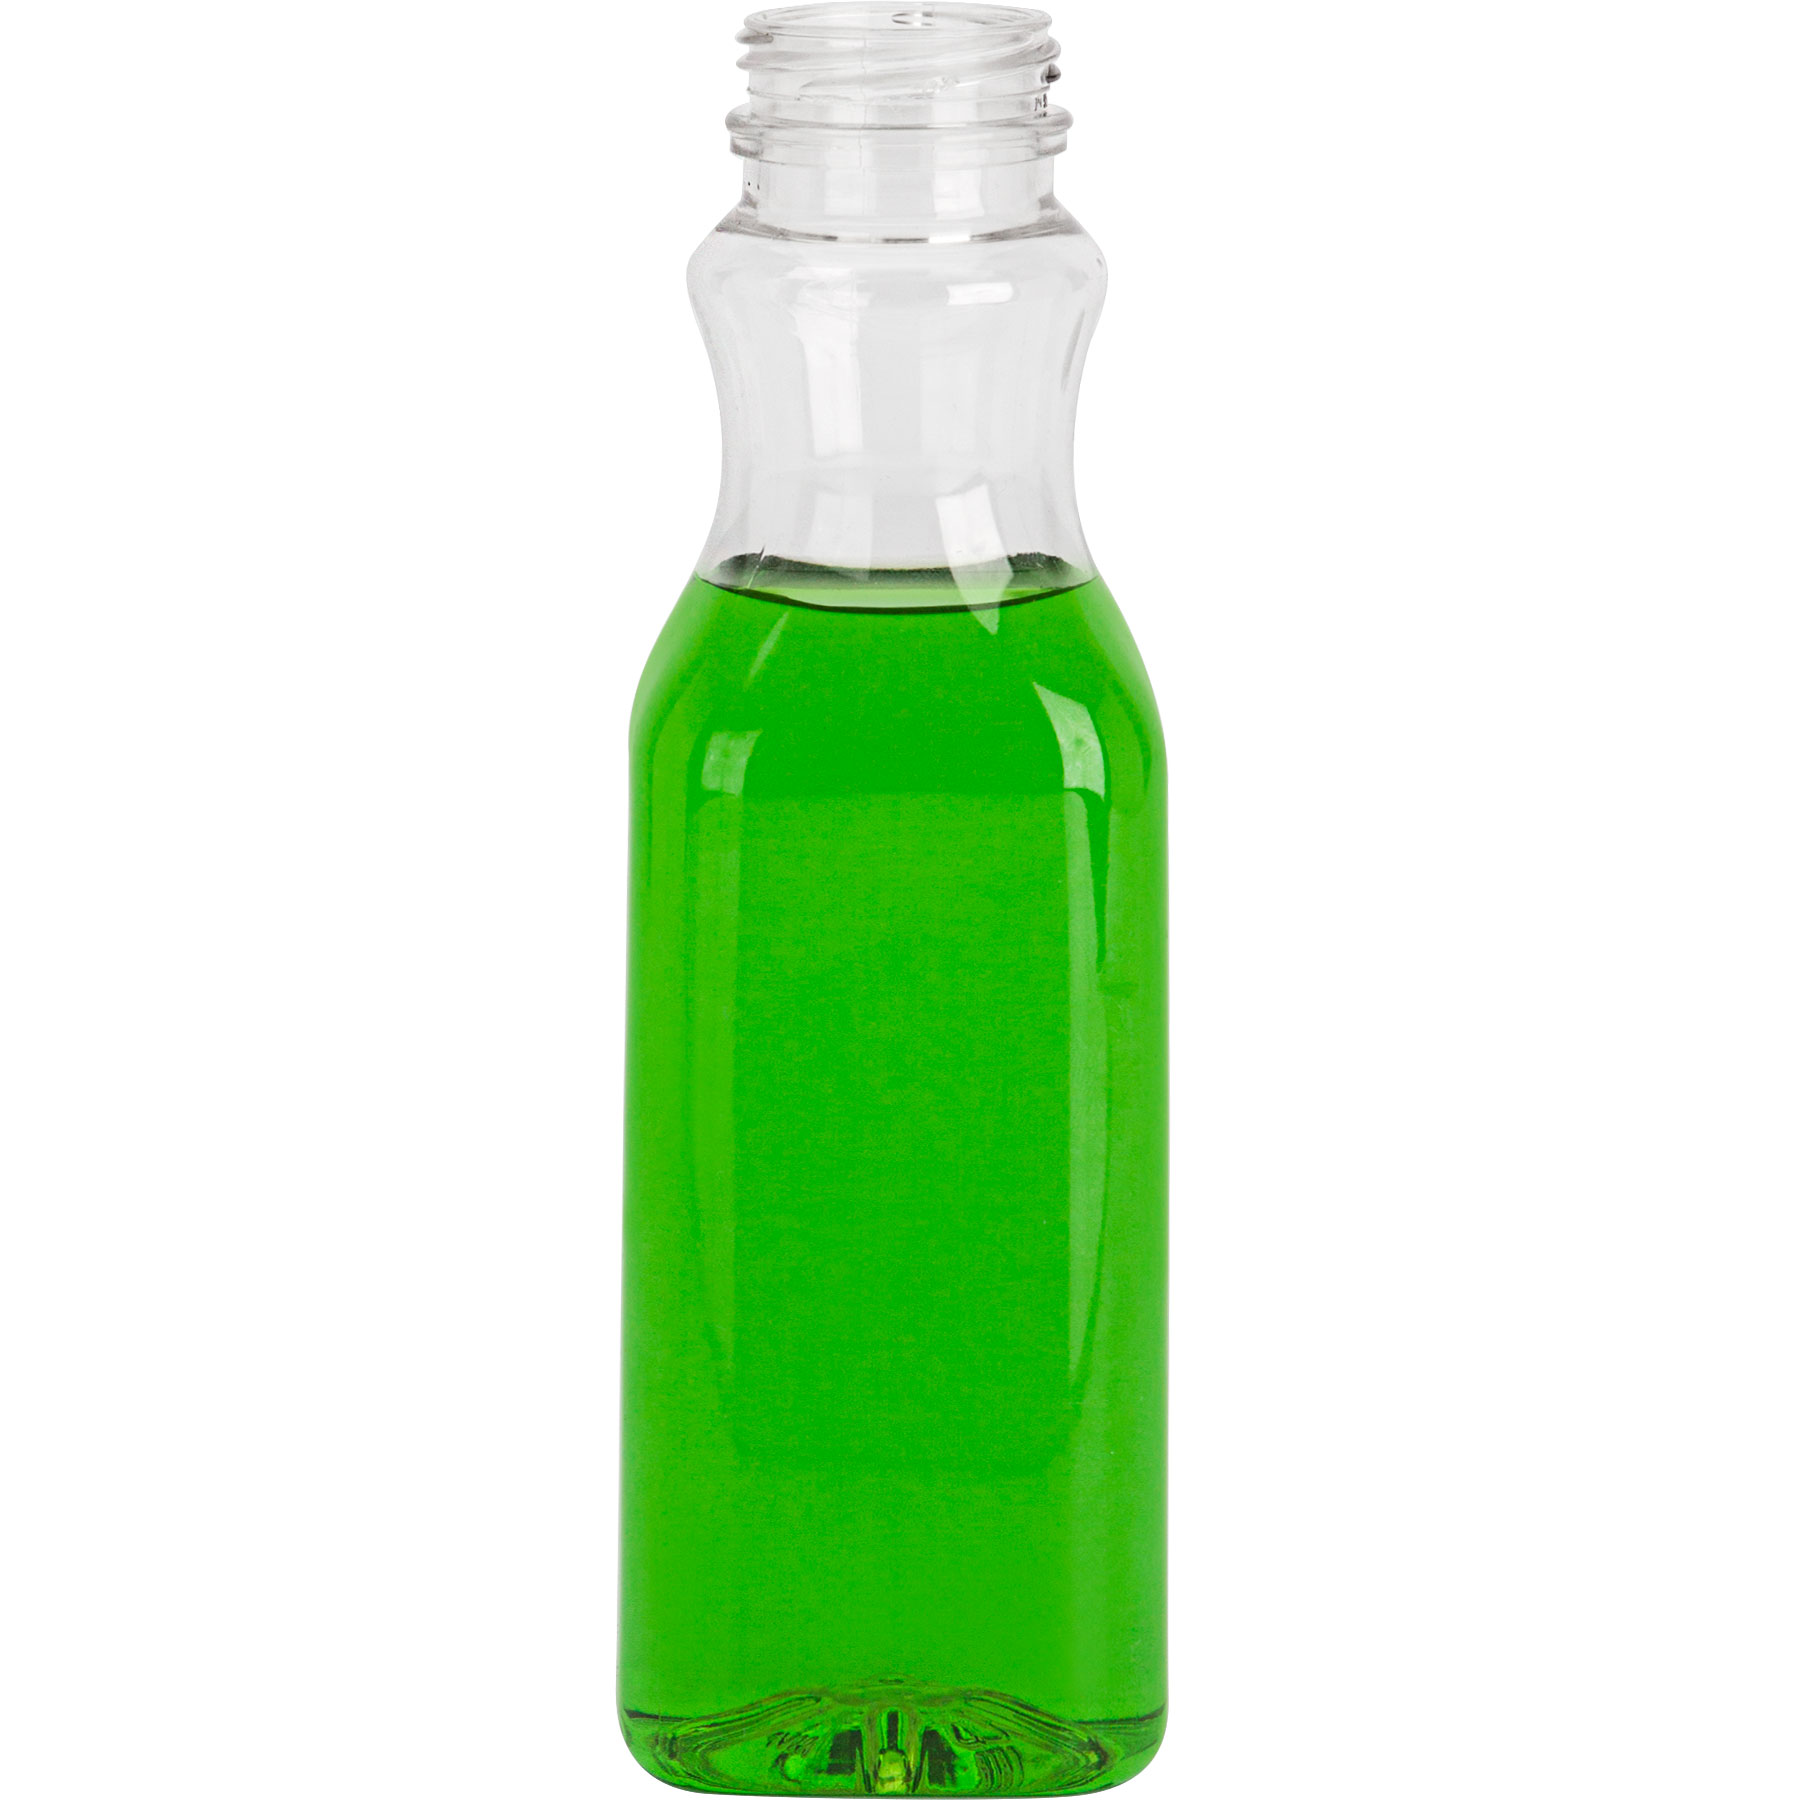 Plastic Beverage Amp Drink Bottles The Cary Company